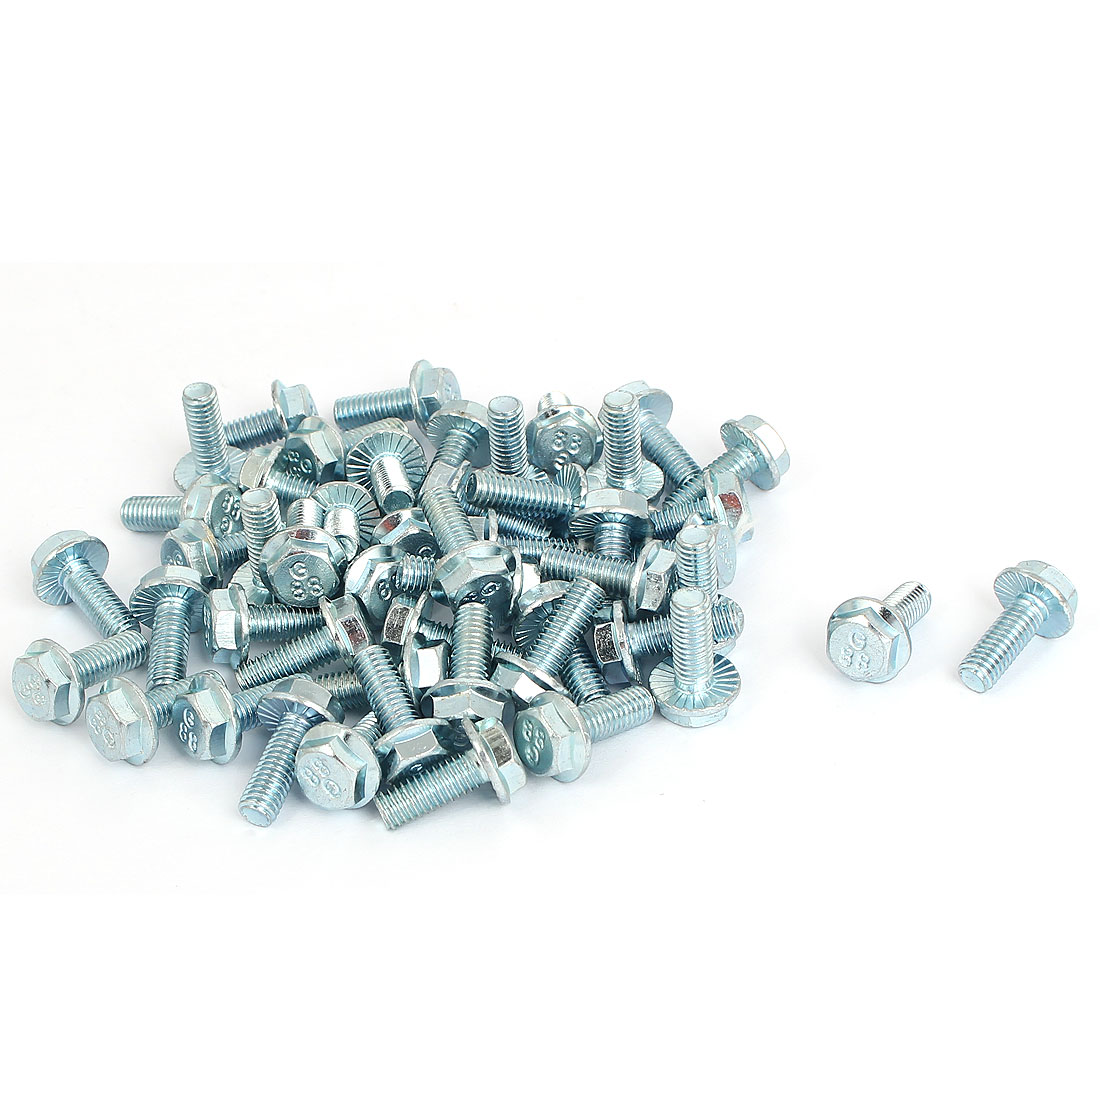 M6x16mm Grade 8.8 Metric Serrated Hex Flange Screws Bolts 50pcs